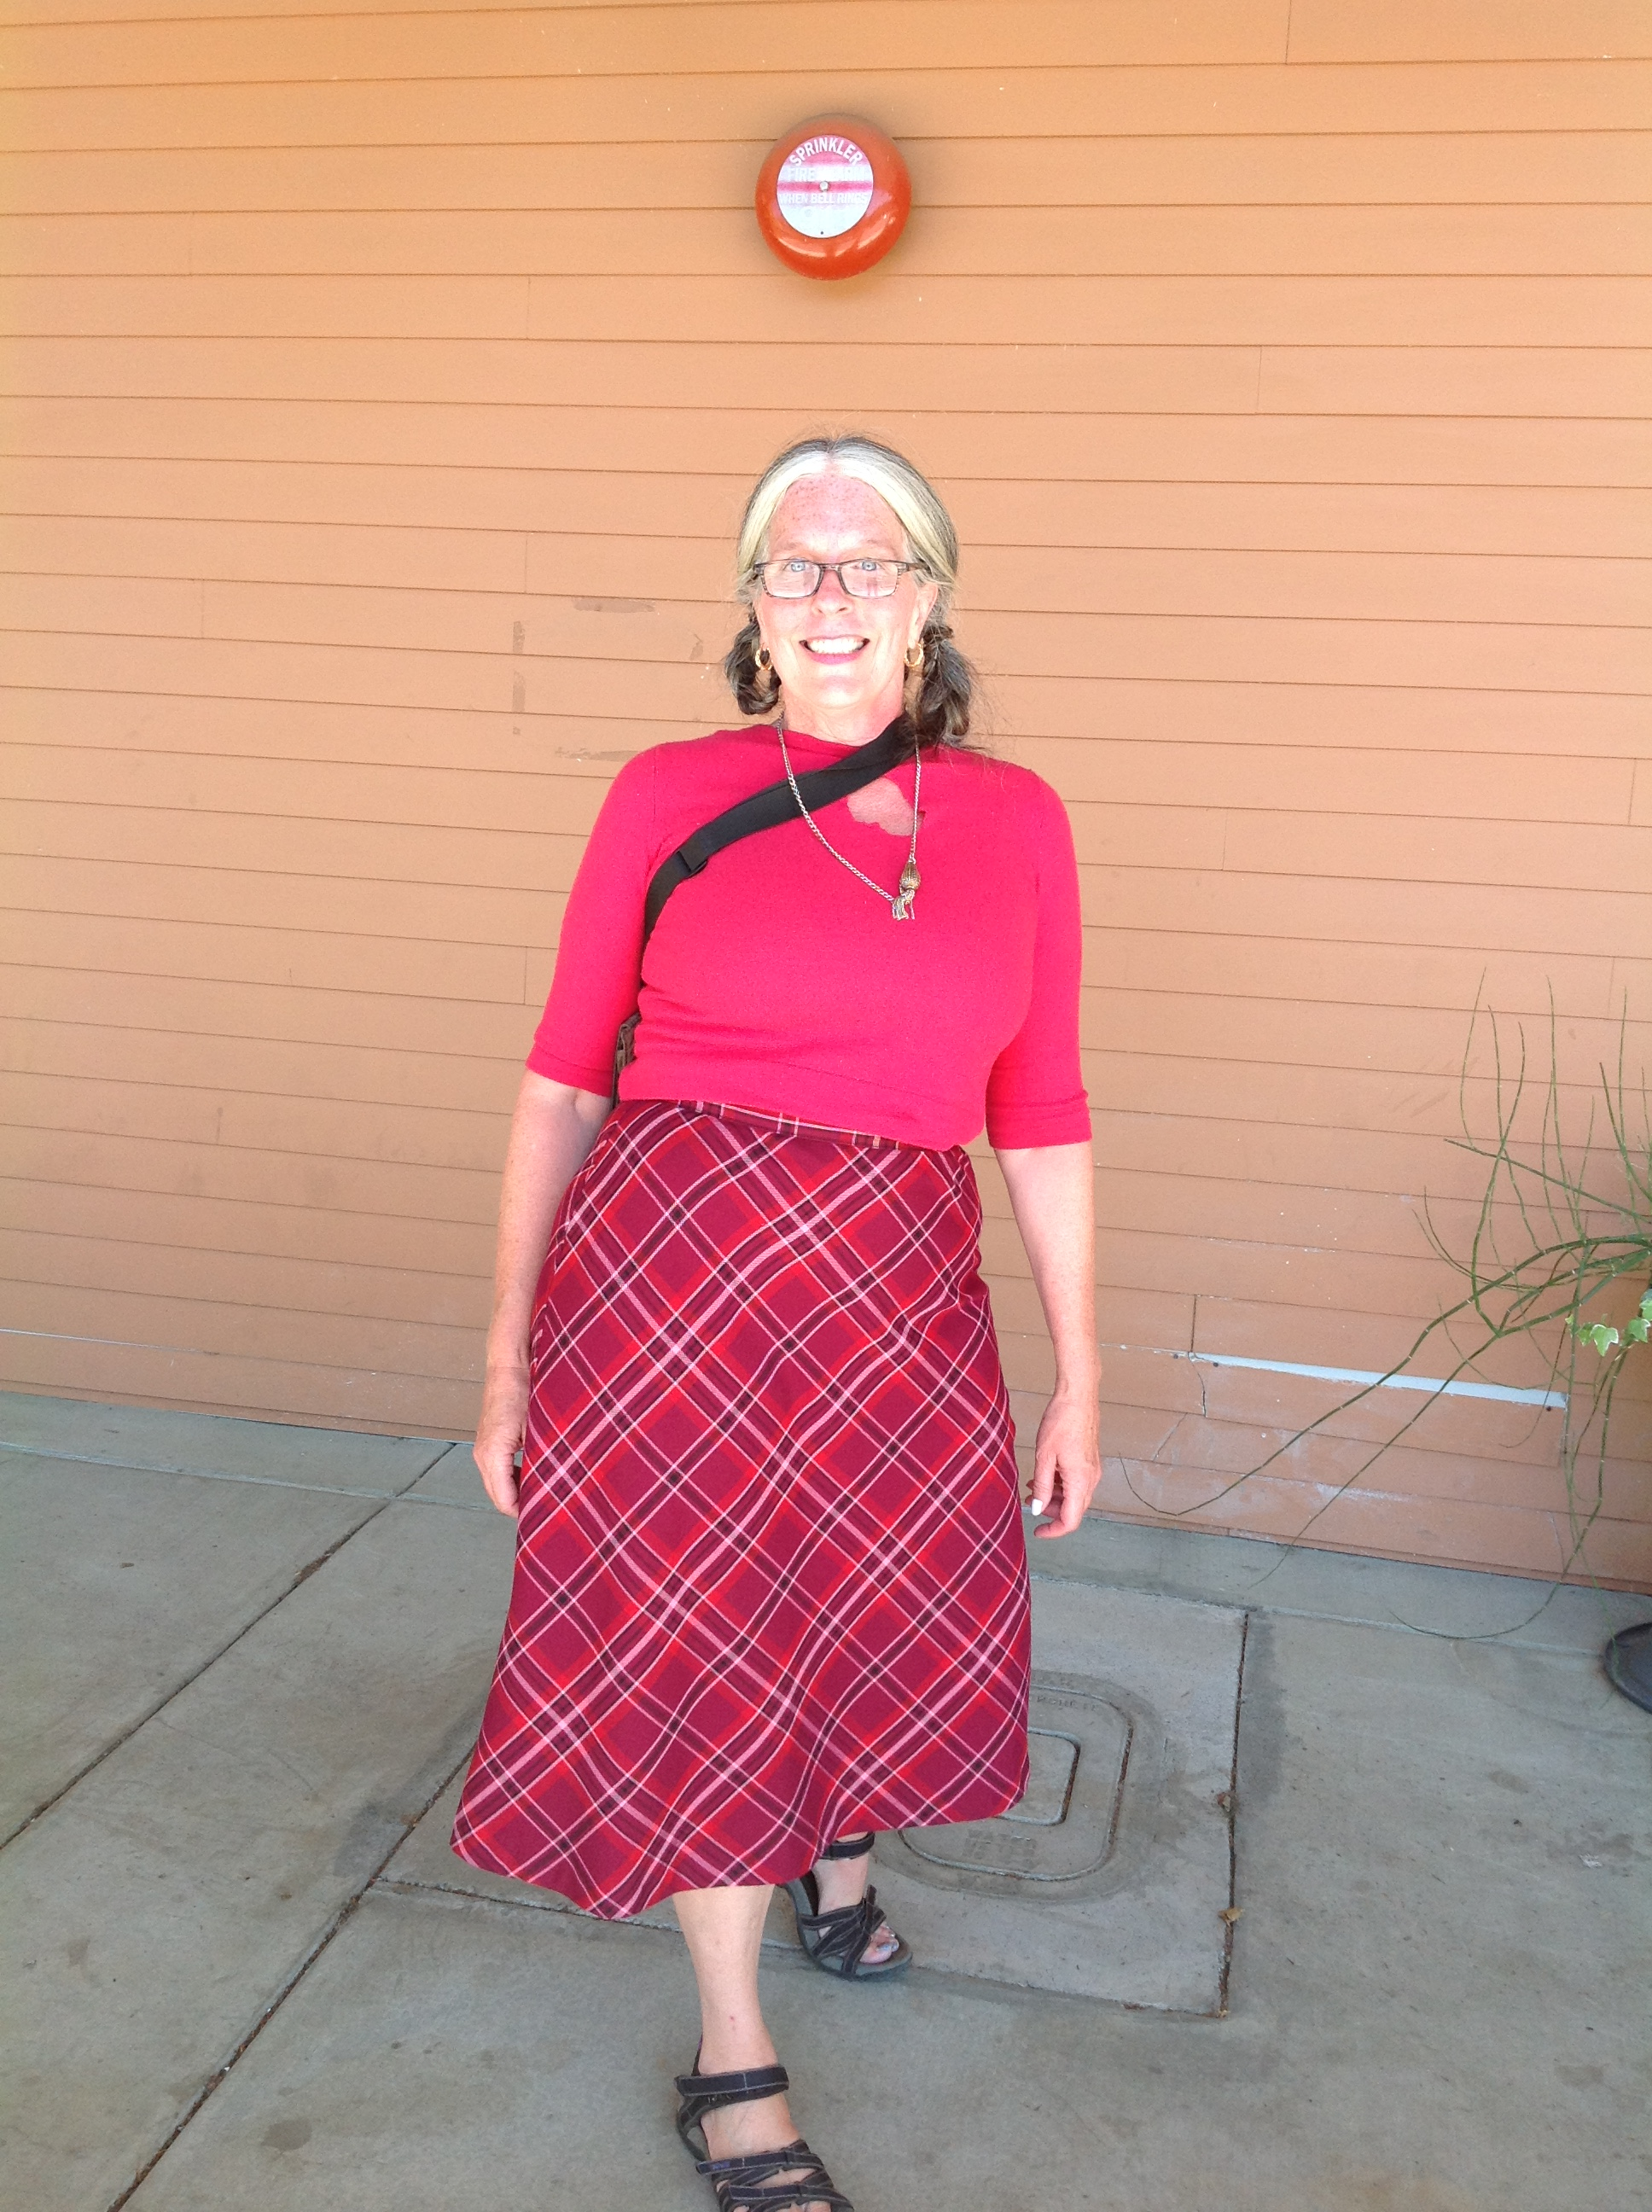 Harlequin Skirt & torn heart sweater. I'm looking for diamonds to wear during Renewal-Transition from BirthdayCake to HauntCouture. I've been dancing outside the library since internet's already off at the house since PaintersHouse is changing location!